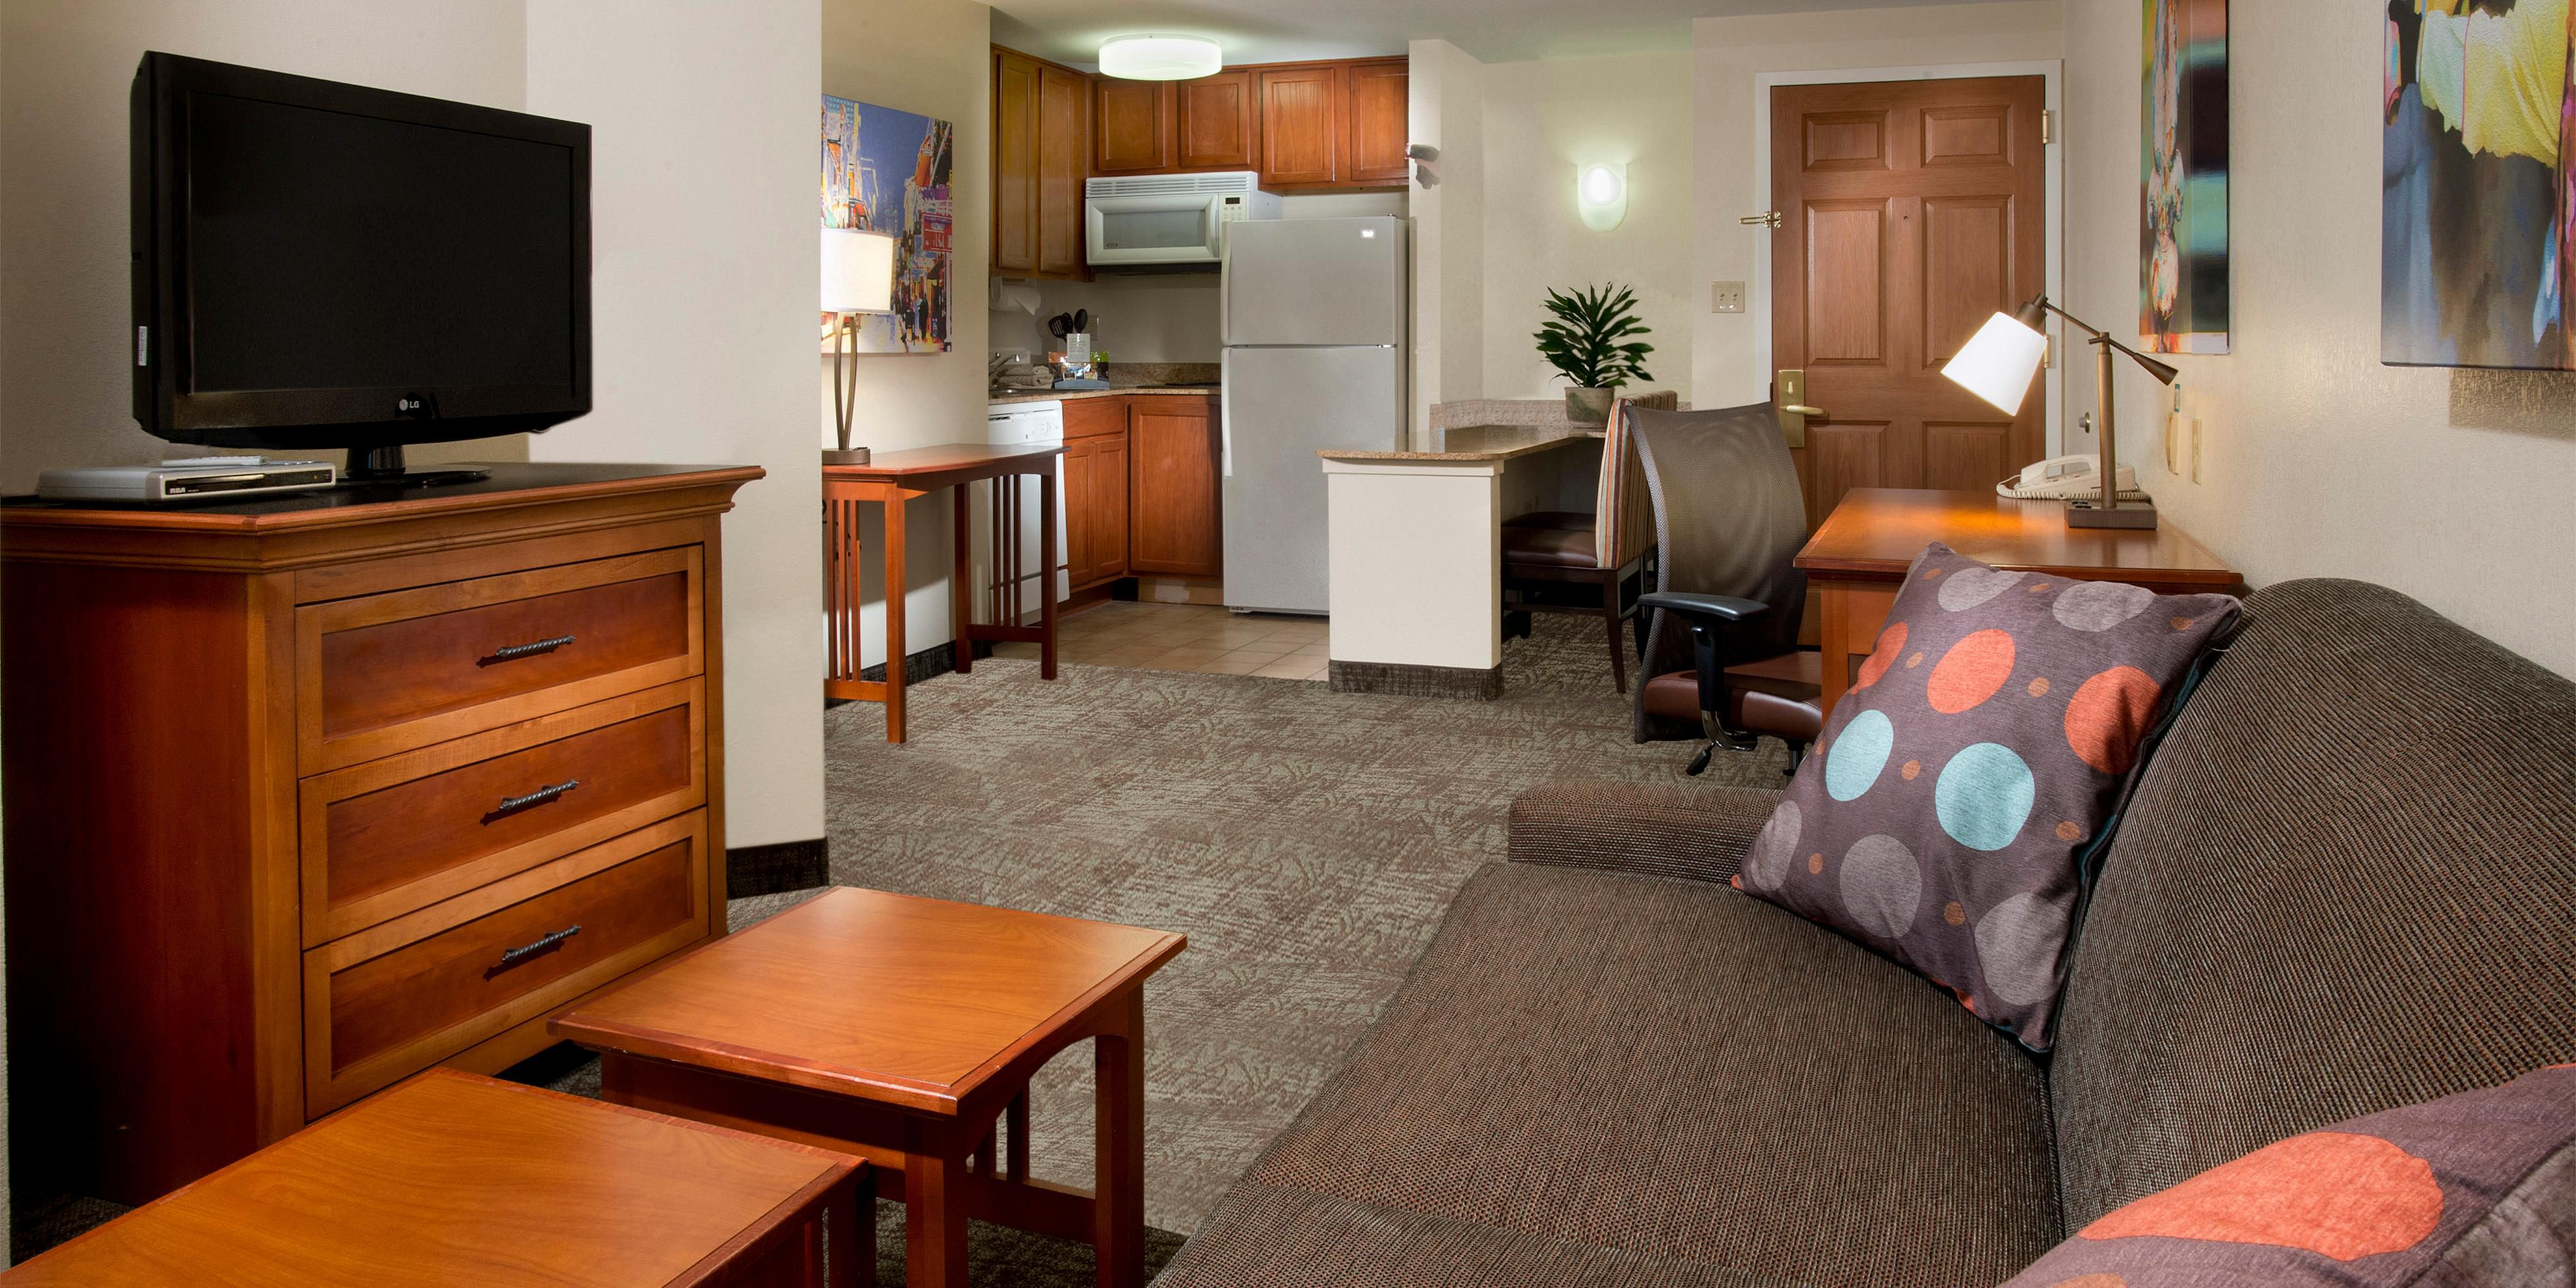 hotel suite hor clsc dallas hotels arlington orleans dfwta in towneplace new bedroom tx suites rooms lodging north